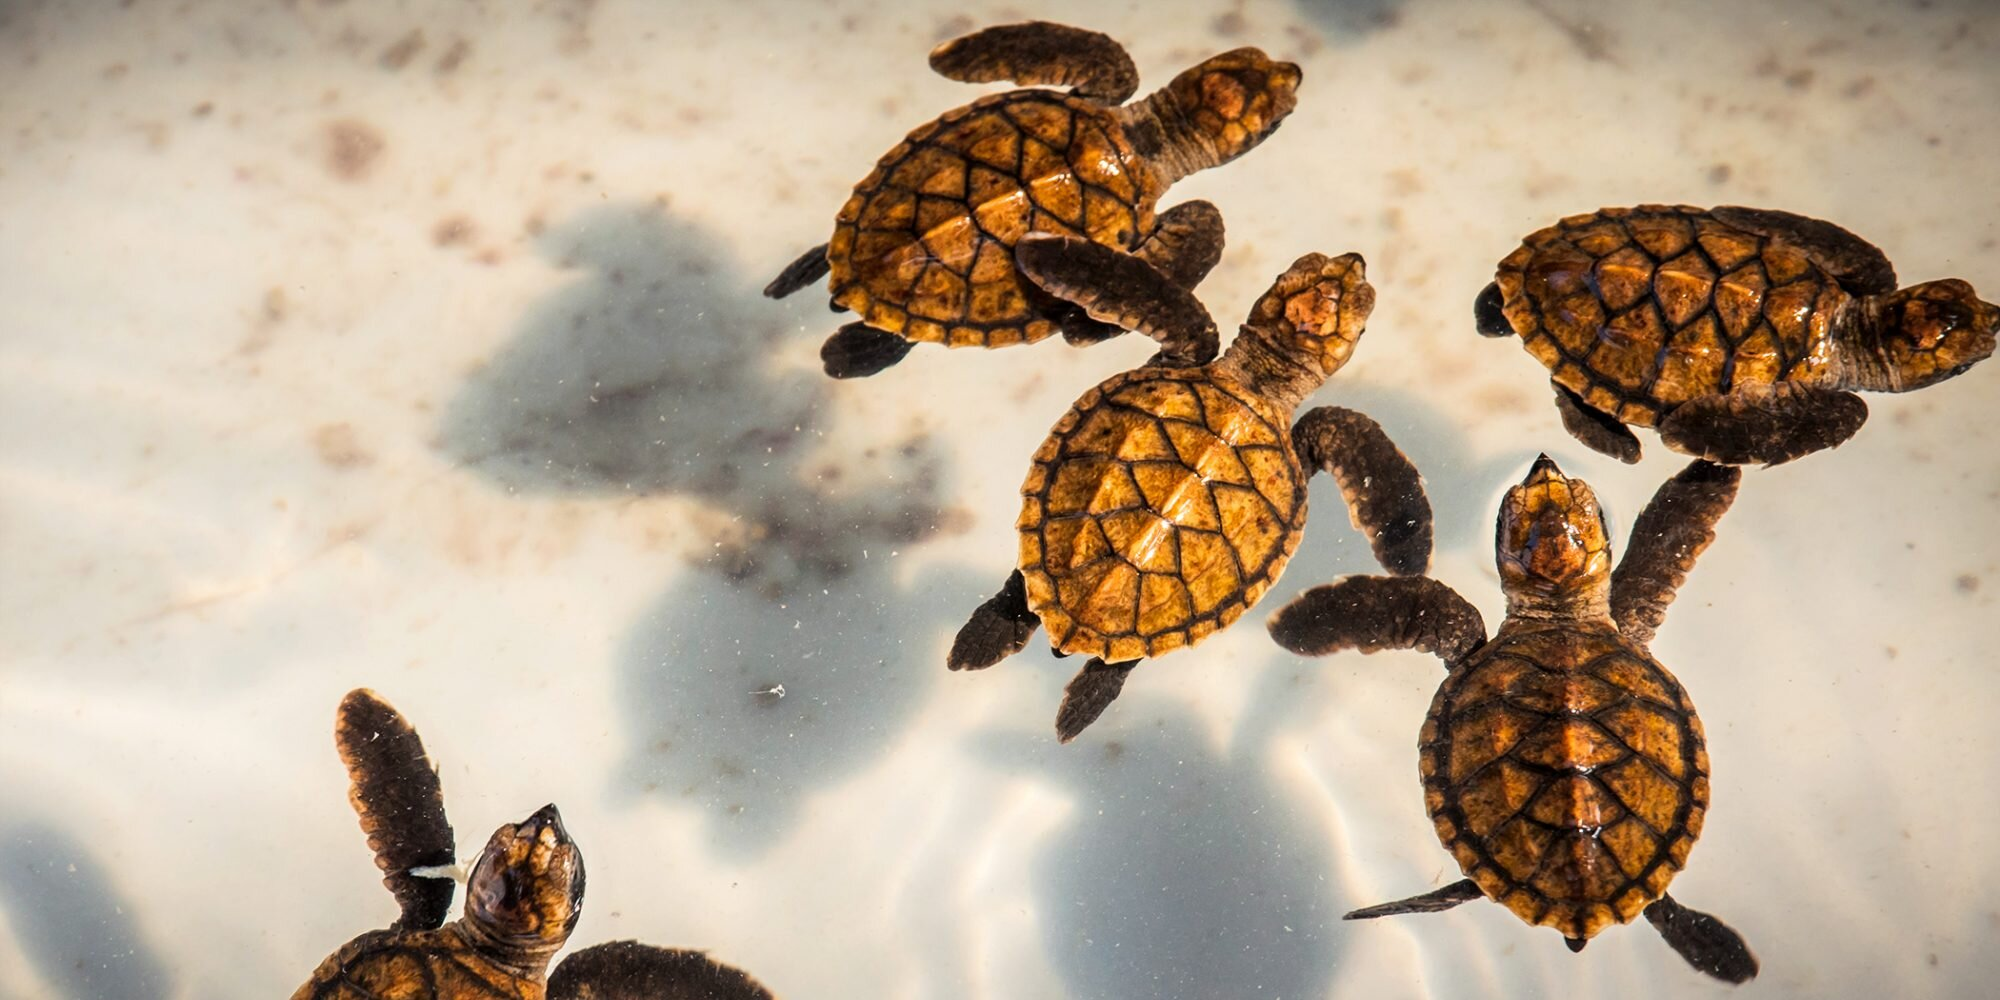 More Than 800 Baby Turtles Rescued from Drains Near New Jersey's Shore